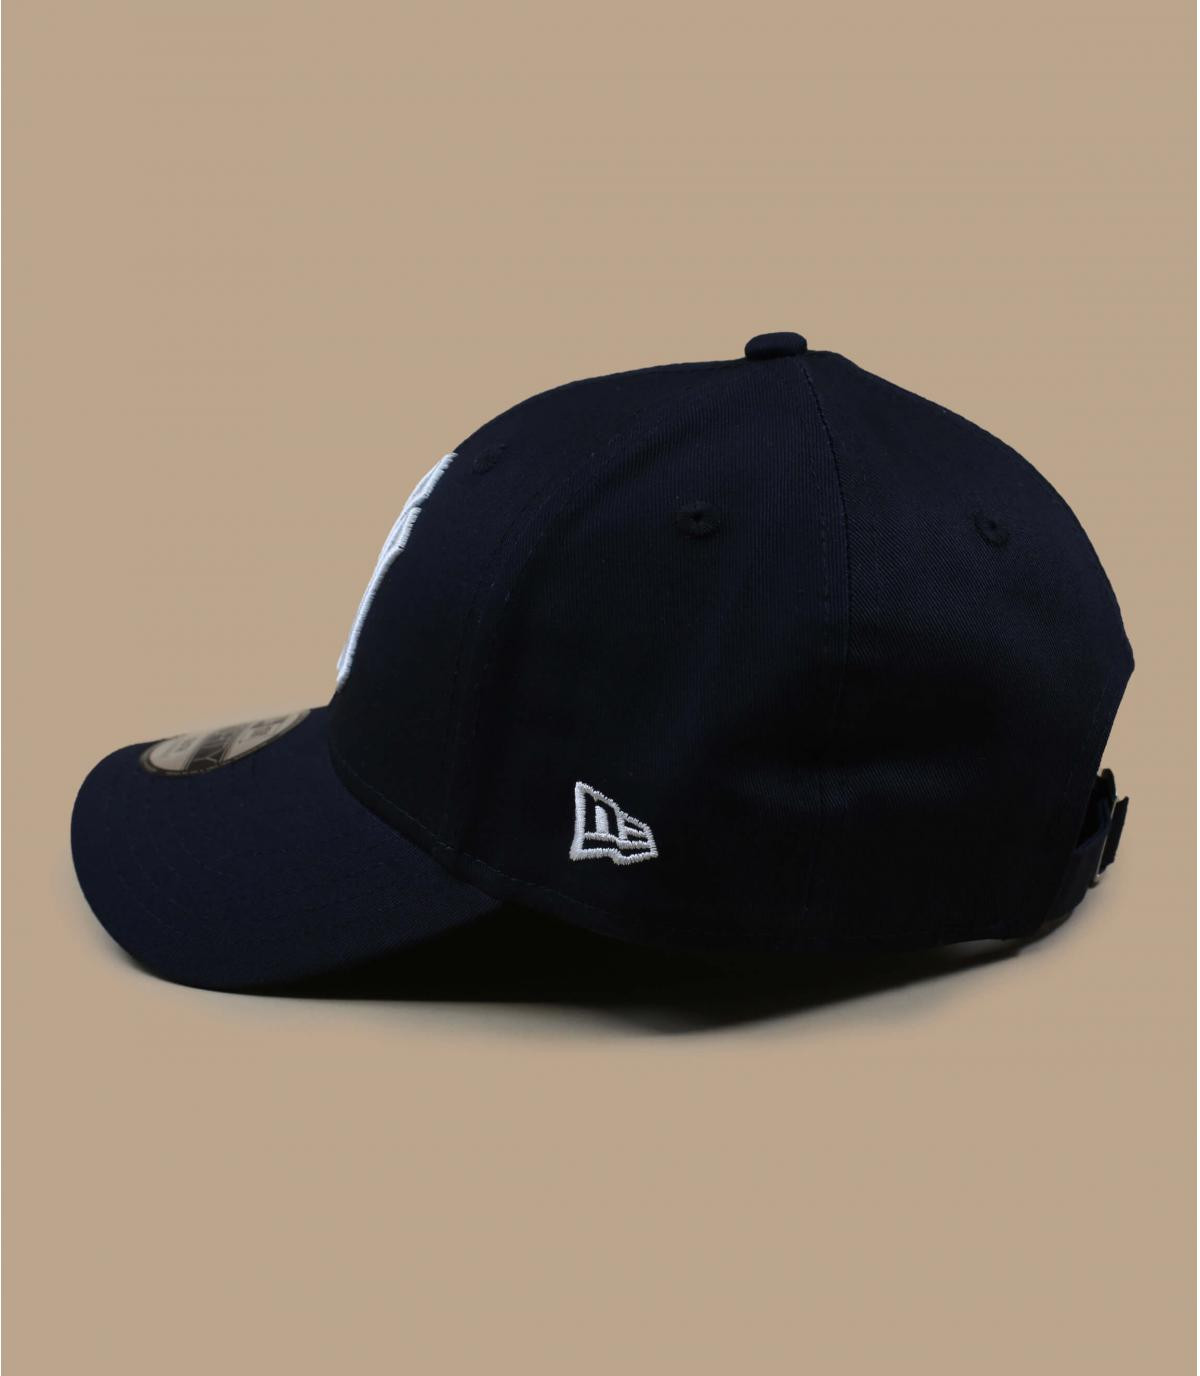 Détails Casquette Kids Infill 940 NY navy - image 3